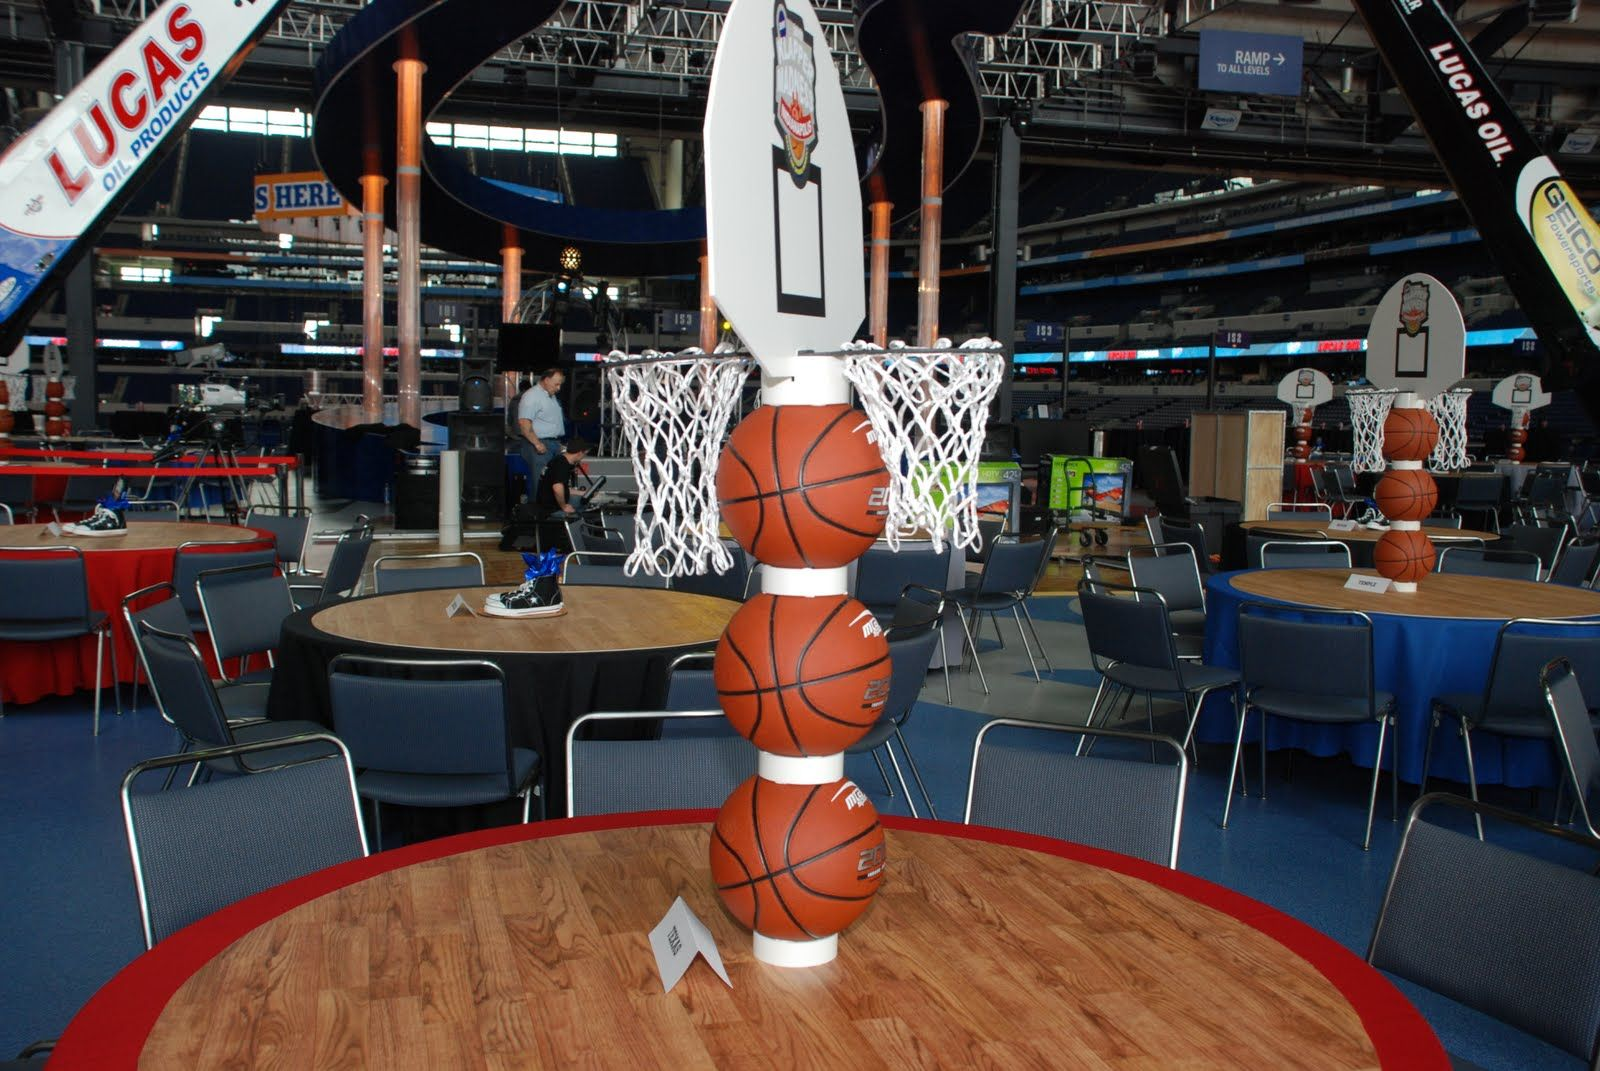 Sports Themed Bar Mitzvah Centerpieces   Tall Stacked Basketball  Centerpieces On Basketball Court Table Toppers